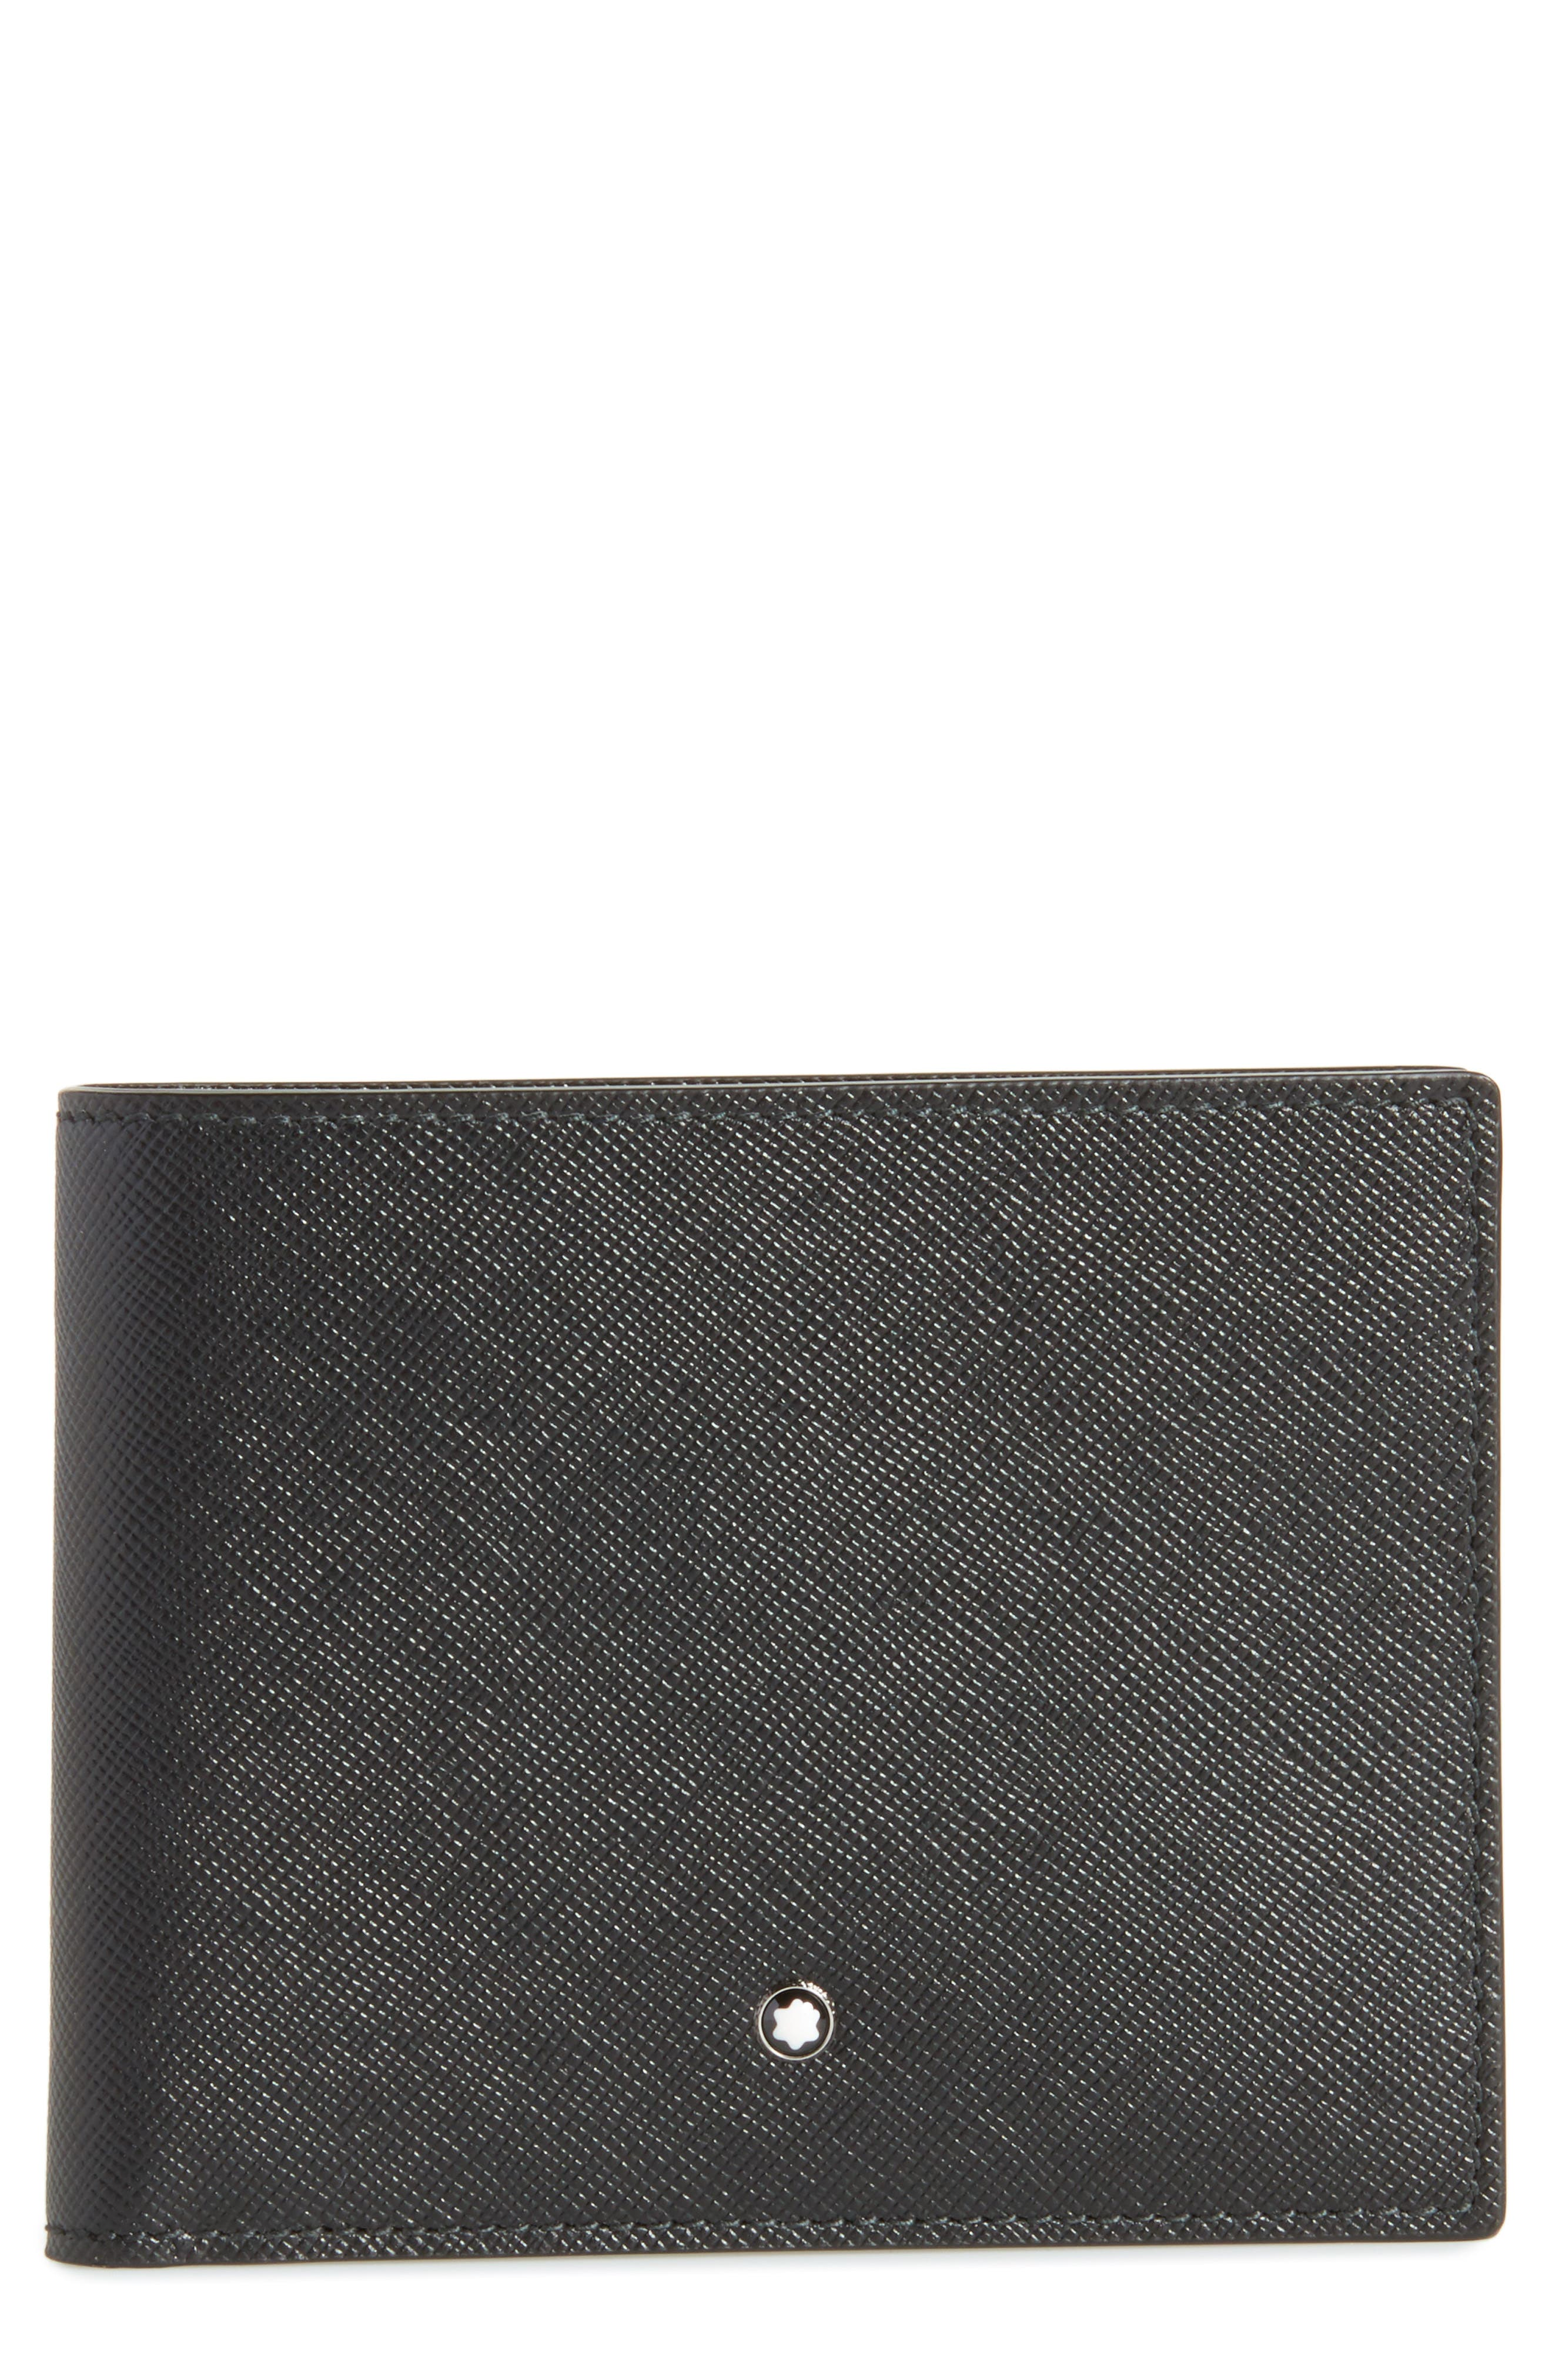 MONTBLANC, Sartorial Leather Bifold Wallet, Main thumbnail 1, color, BLACK